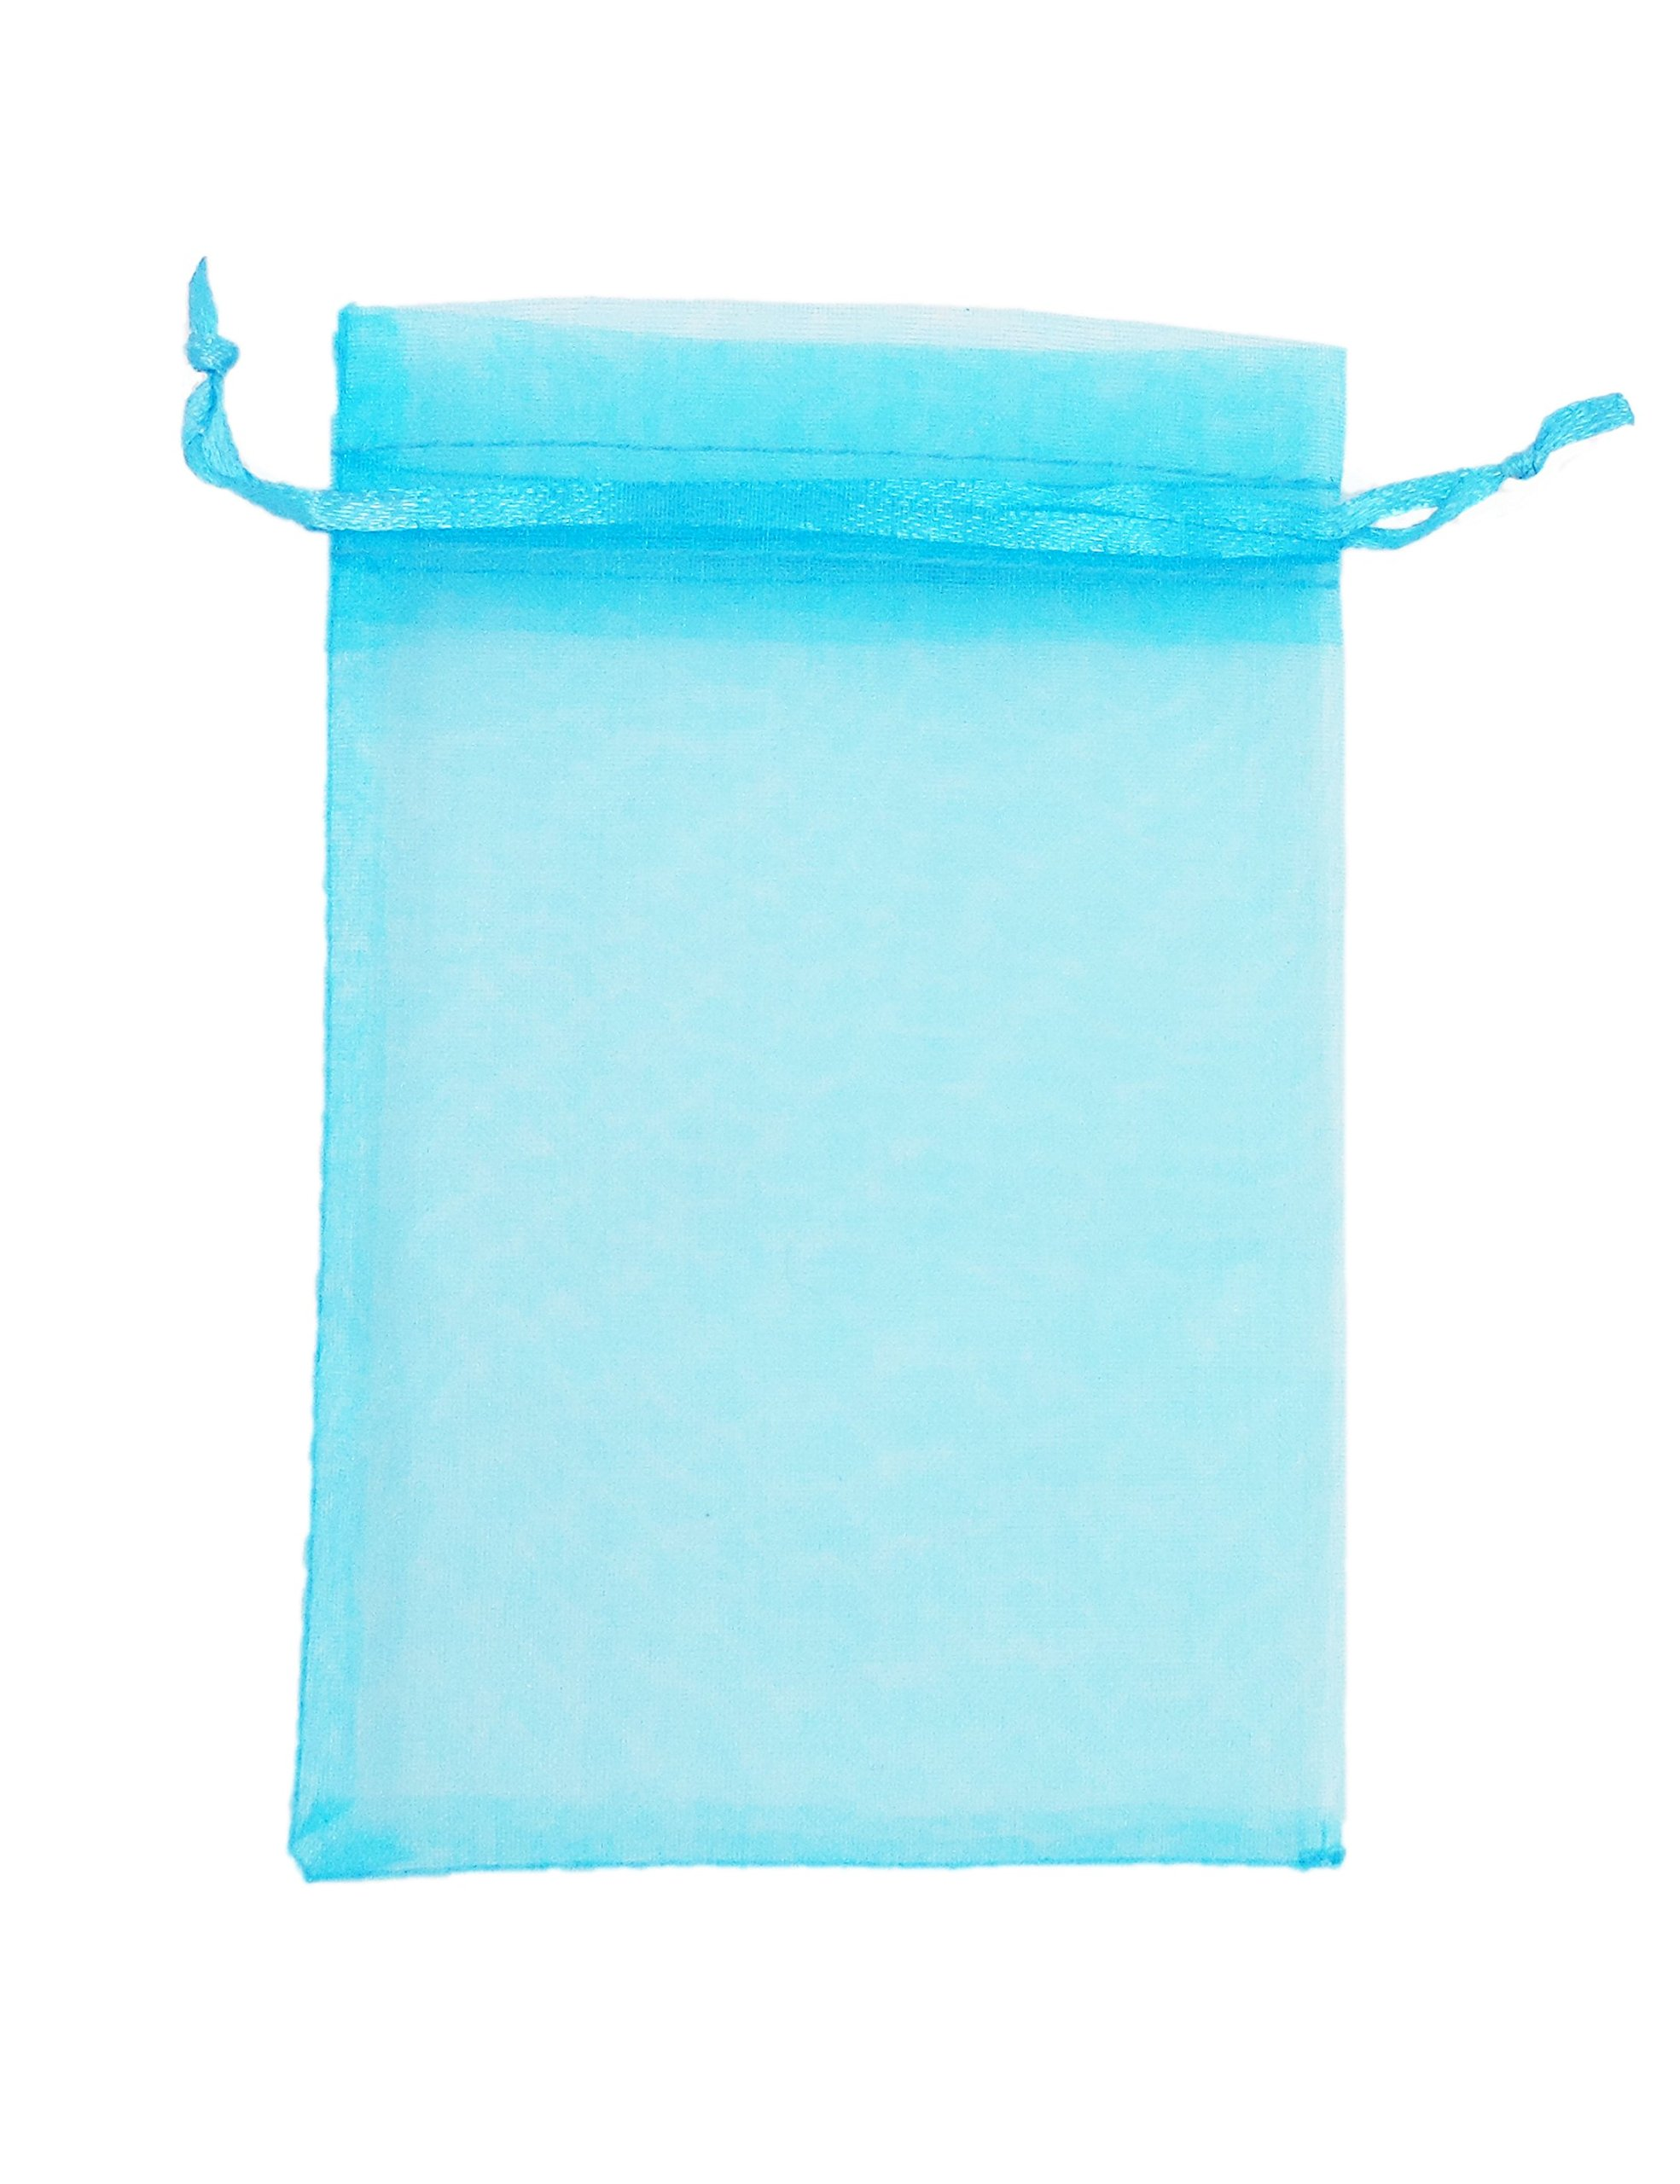 "AIEDE Aqua Blue 4x6"" 10x15cm Drawstring Organza Pouch Strong Wedding Favor Gift Candy Bag (Pack of 100pcs)"